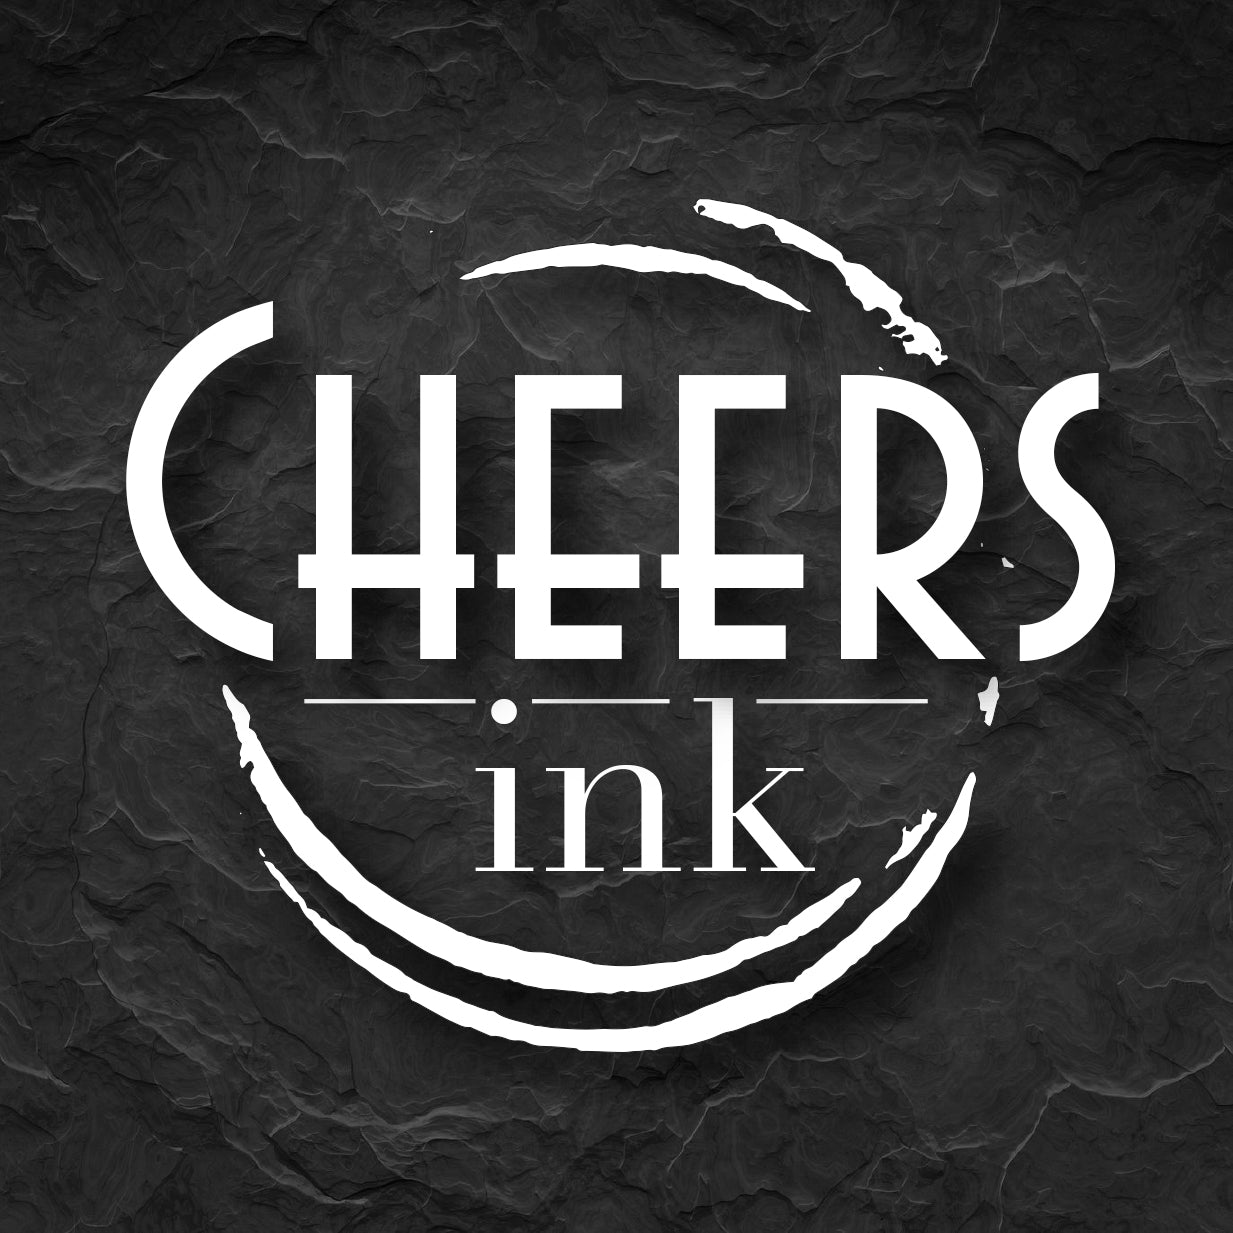 Cheers Ink Gift Card